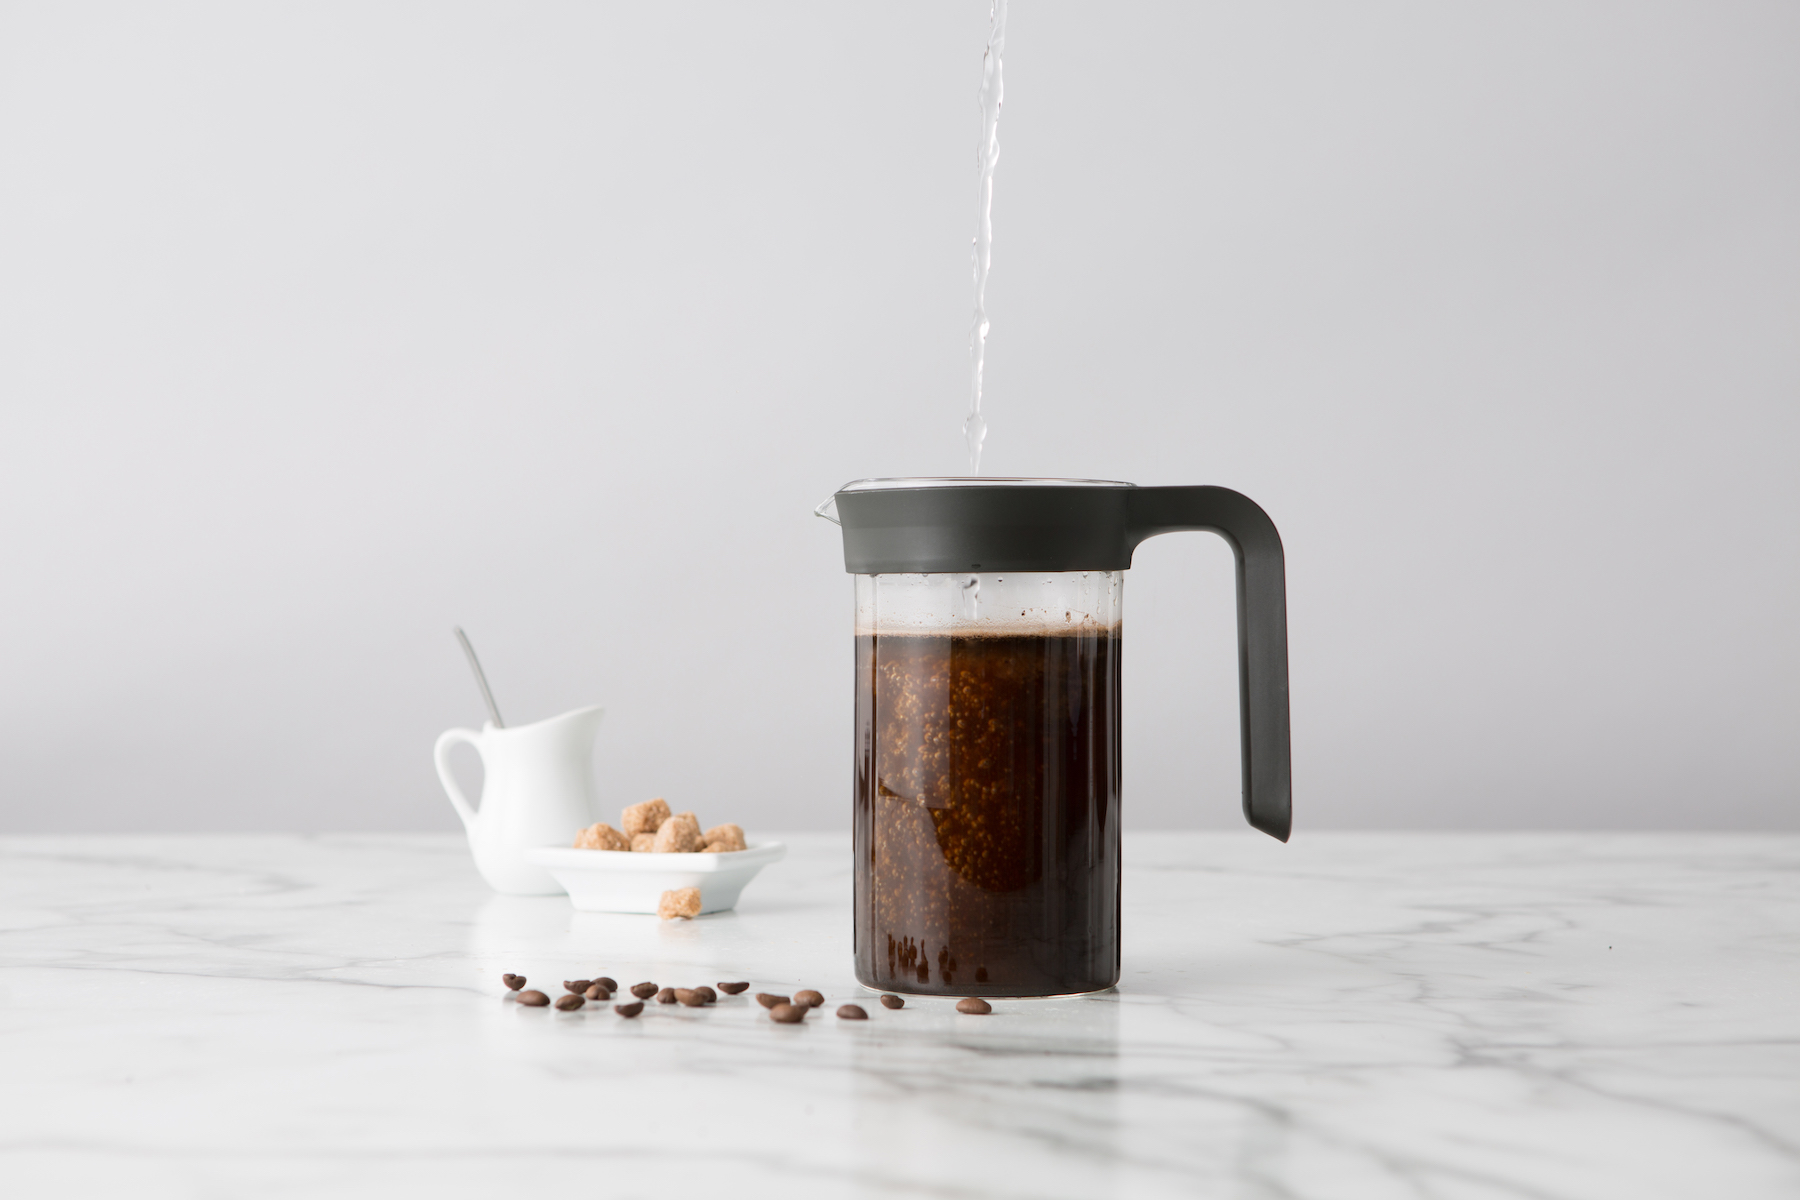 chef'n 3-in-1 coffee brewing set